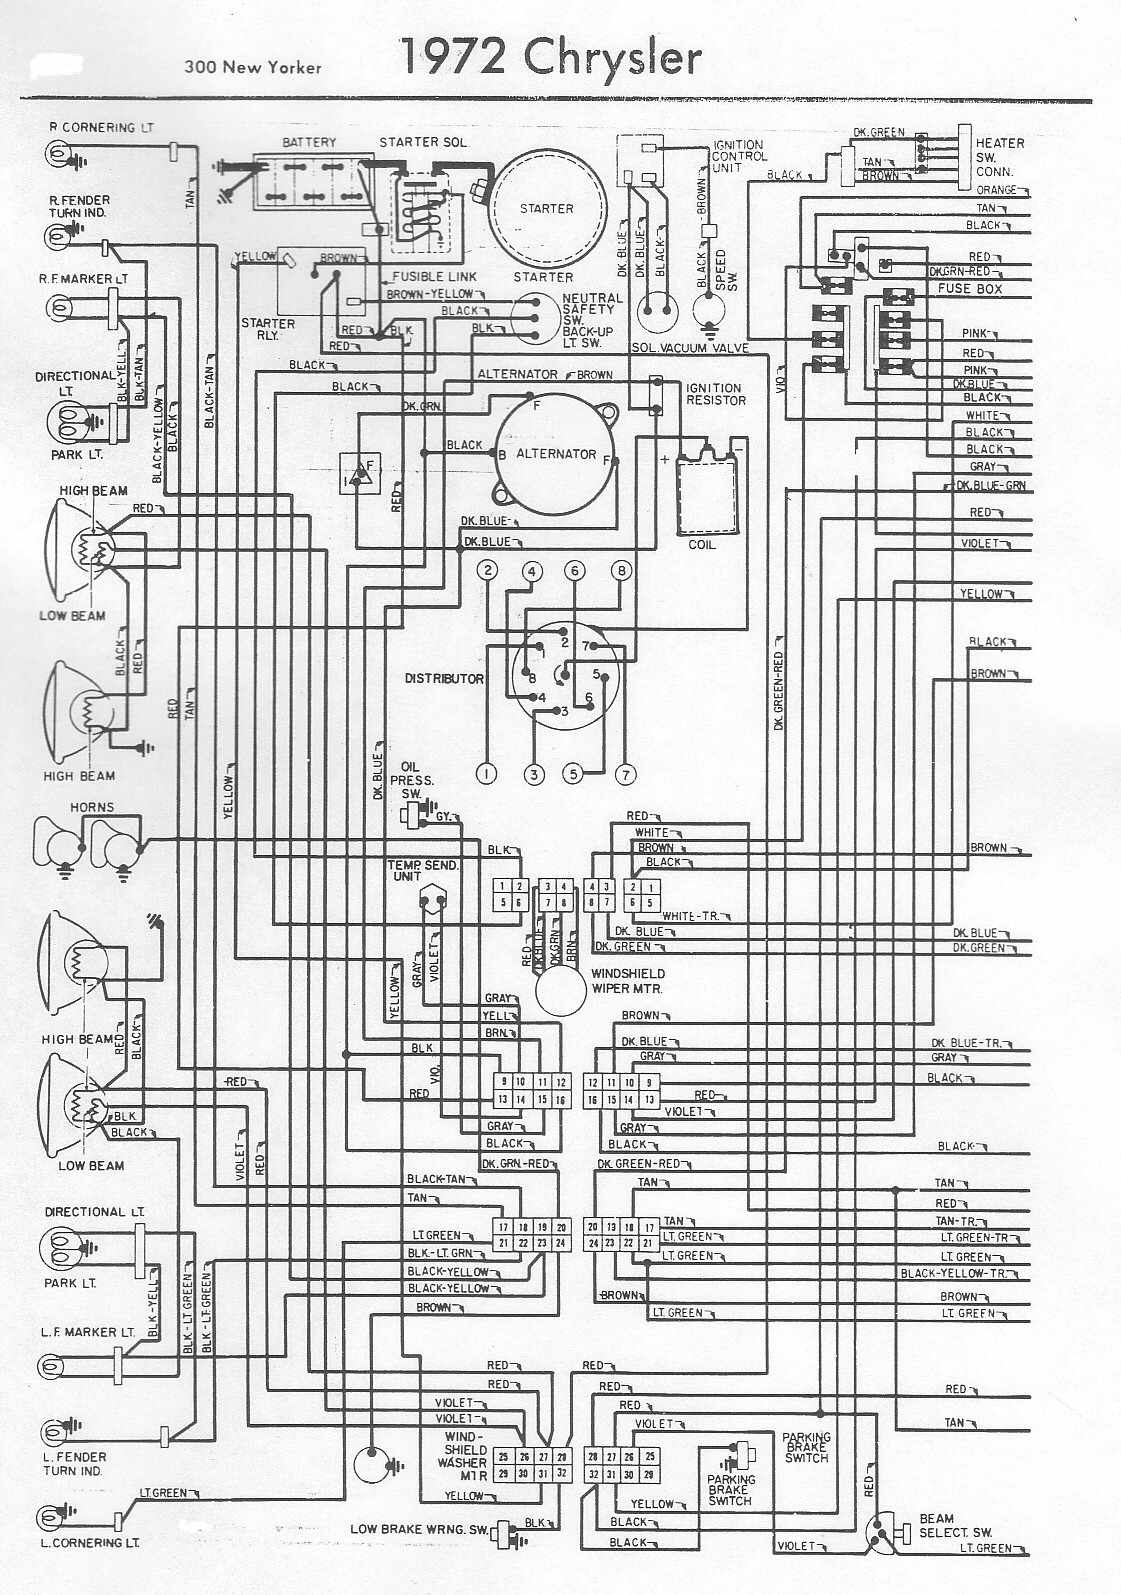 medium resolution of 2005 chrysler 300 wiring schematics wiring diagram hub rh 6 20 4 wellnessurlaub 4you de 2005 chrysler 300 electrical diagram 2005 chrysler 300 starter